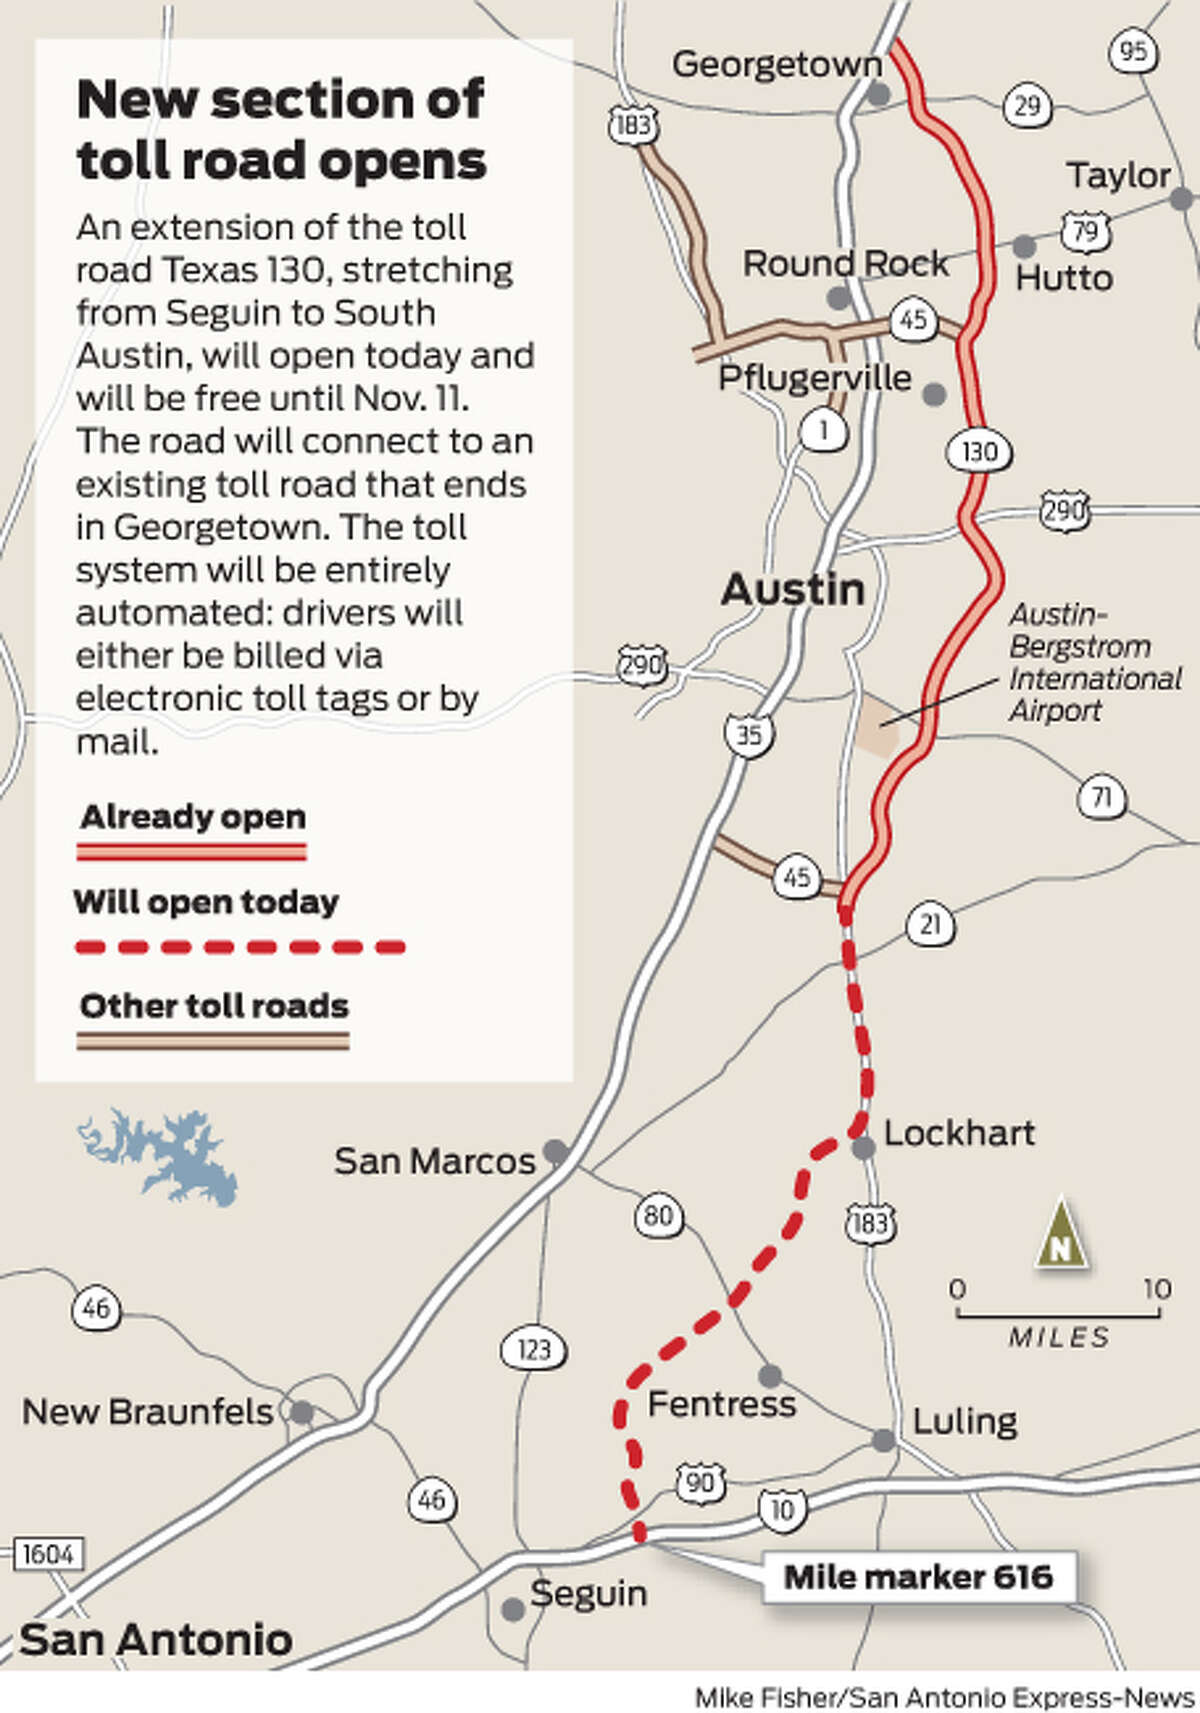 An extension of the toll road Texas 130, stretching from Seguin to South Austin, will open today and will be free until Nov 11. The road will connect to an existing toll road that ends in Georgetown. The toll system will be entirely automated: drivers will either be billed via electronic toll tags or by mail.